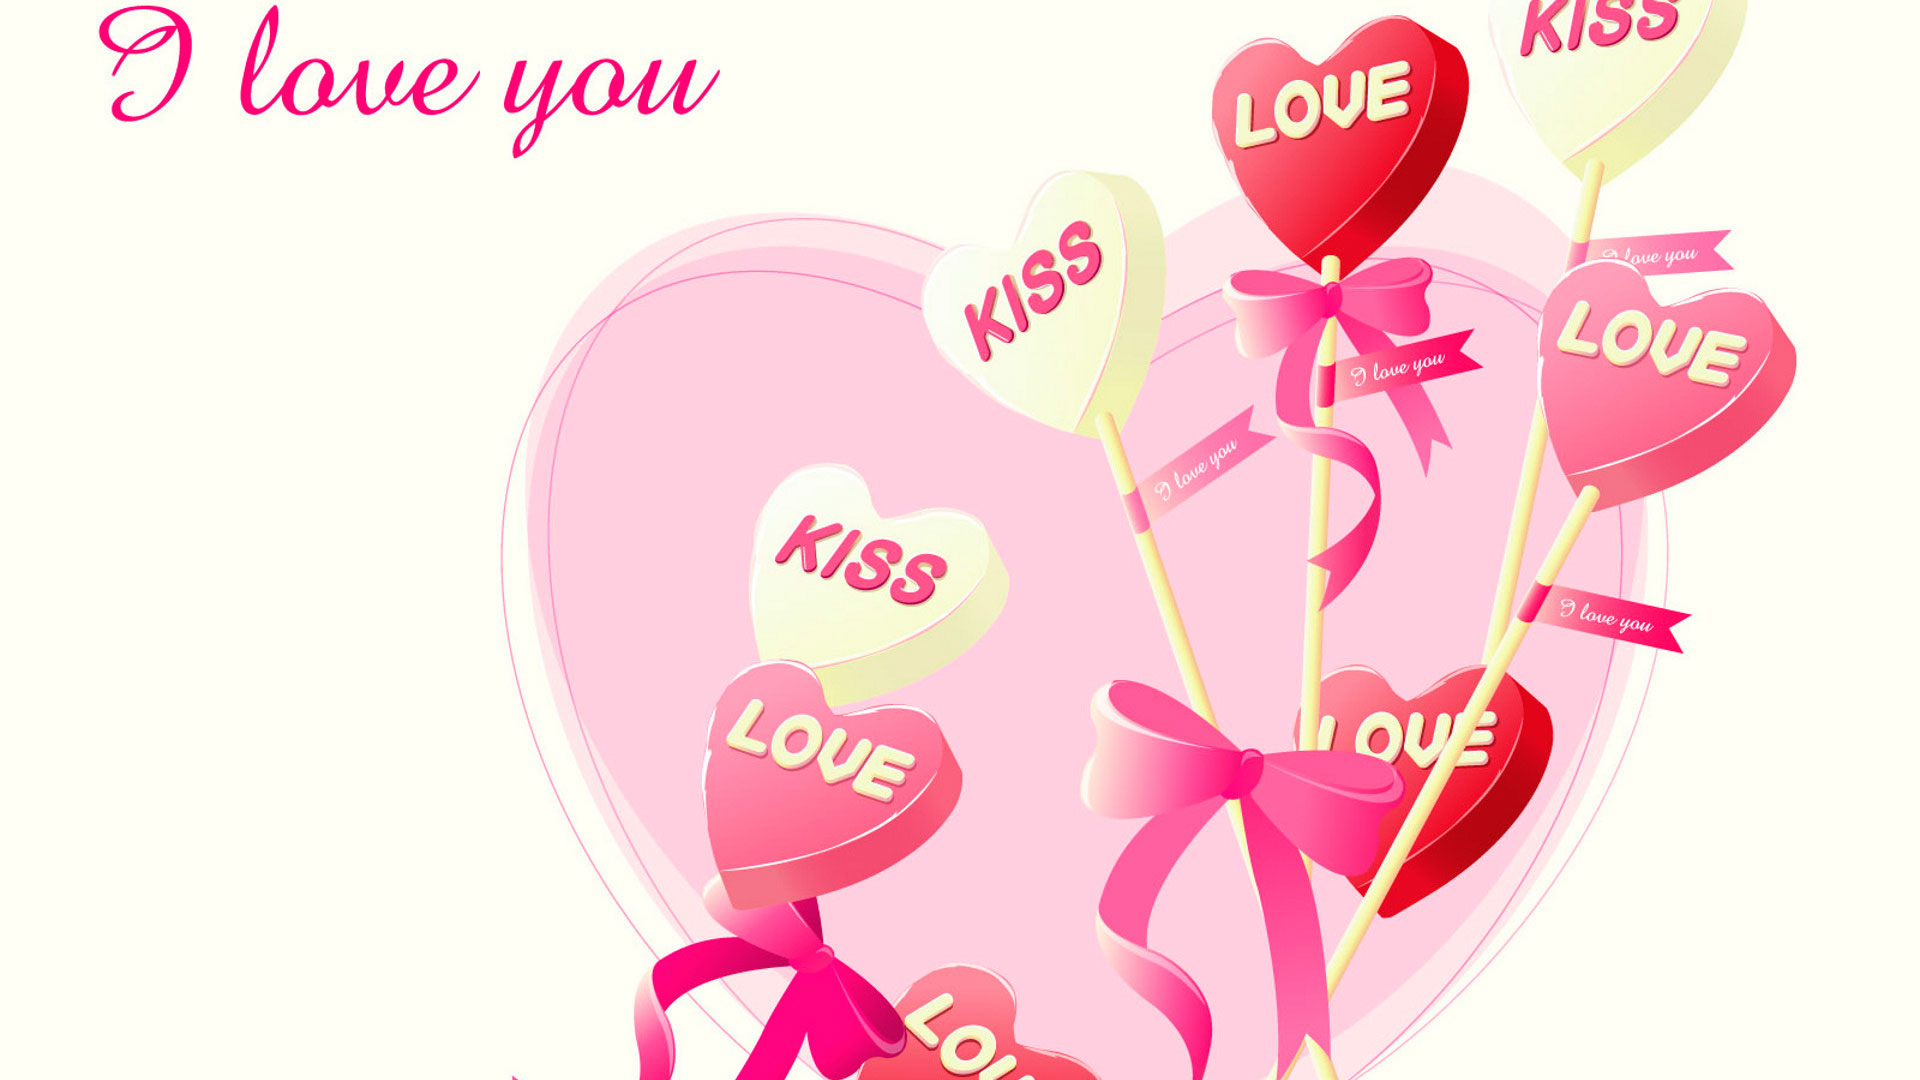 Kiss love images wallpapers download hd collection - HD ...